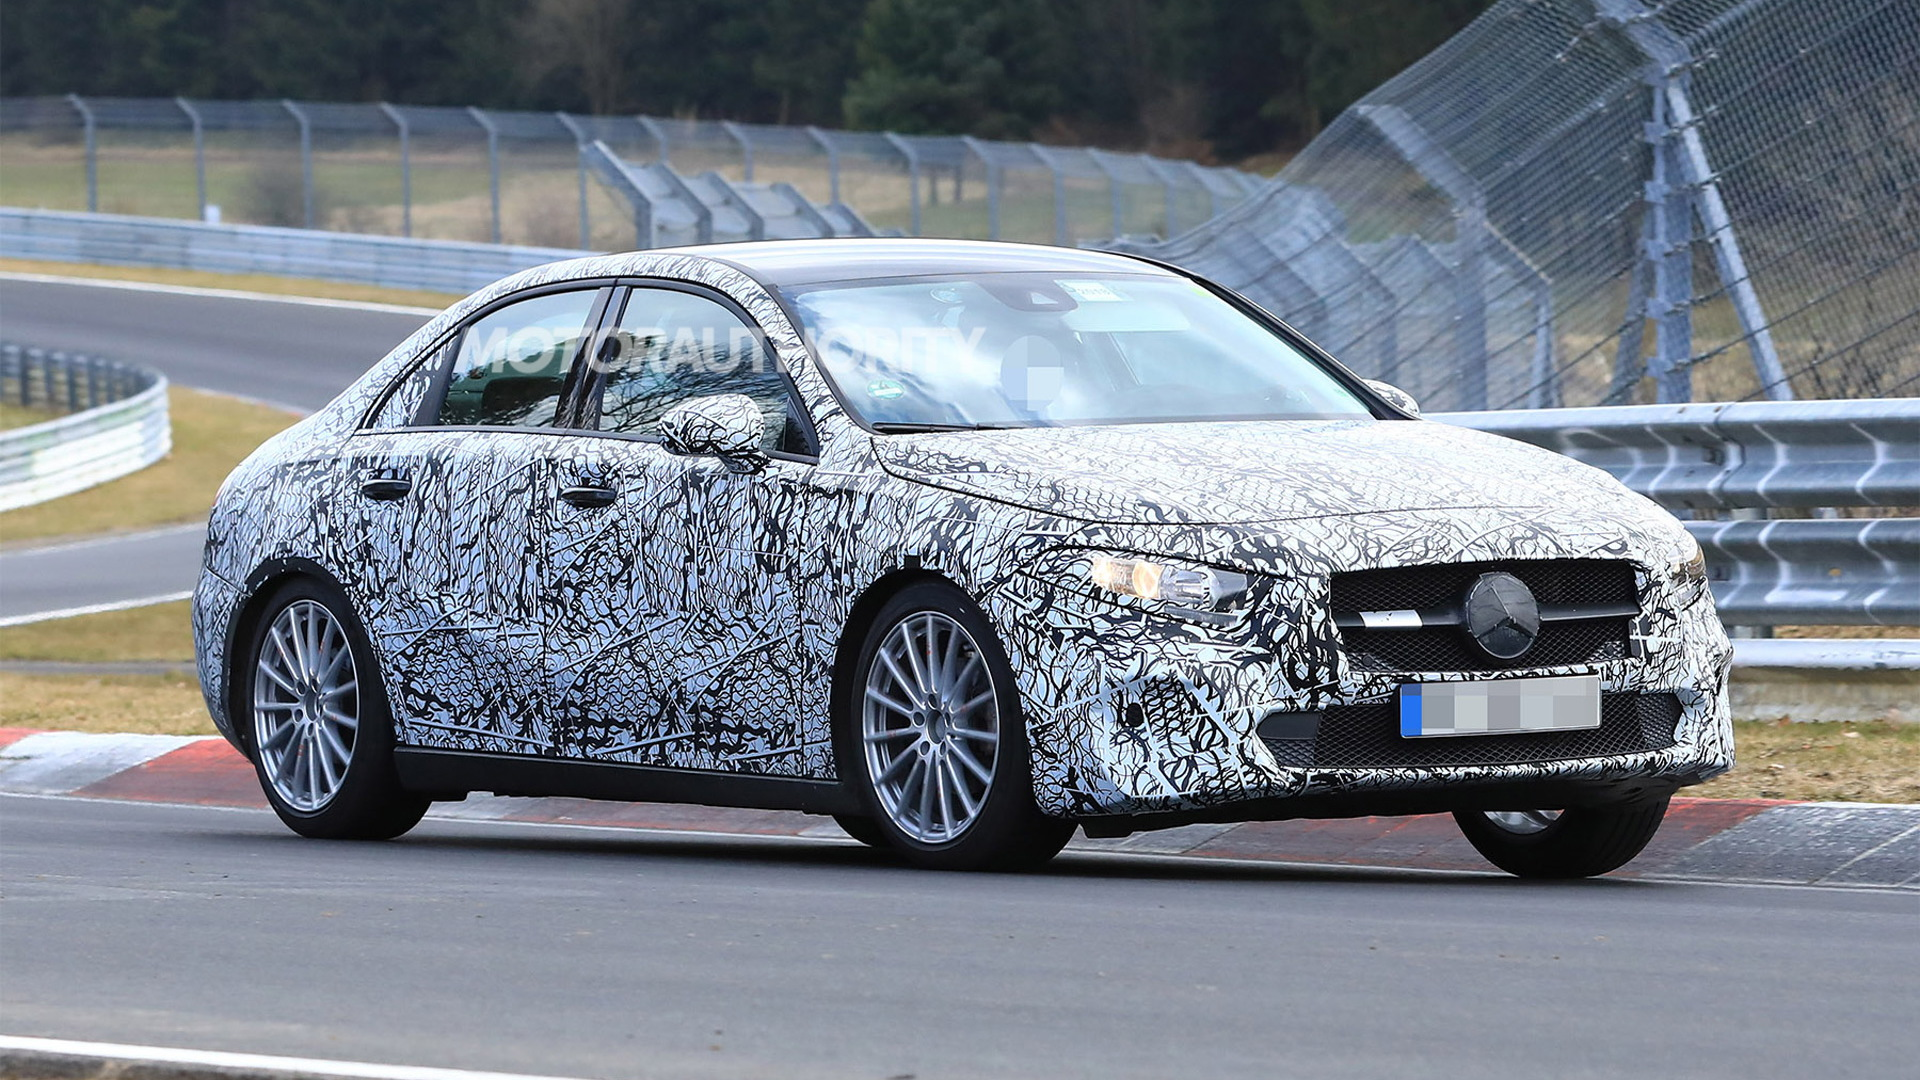 2019 Mercedes-Benz A-Class sedan spy shots - Image via S. Baldauf/SB-Medien